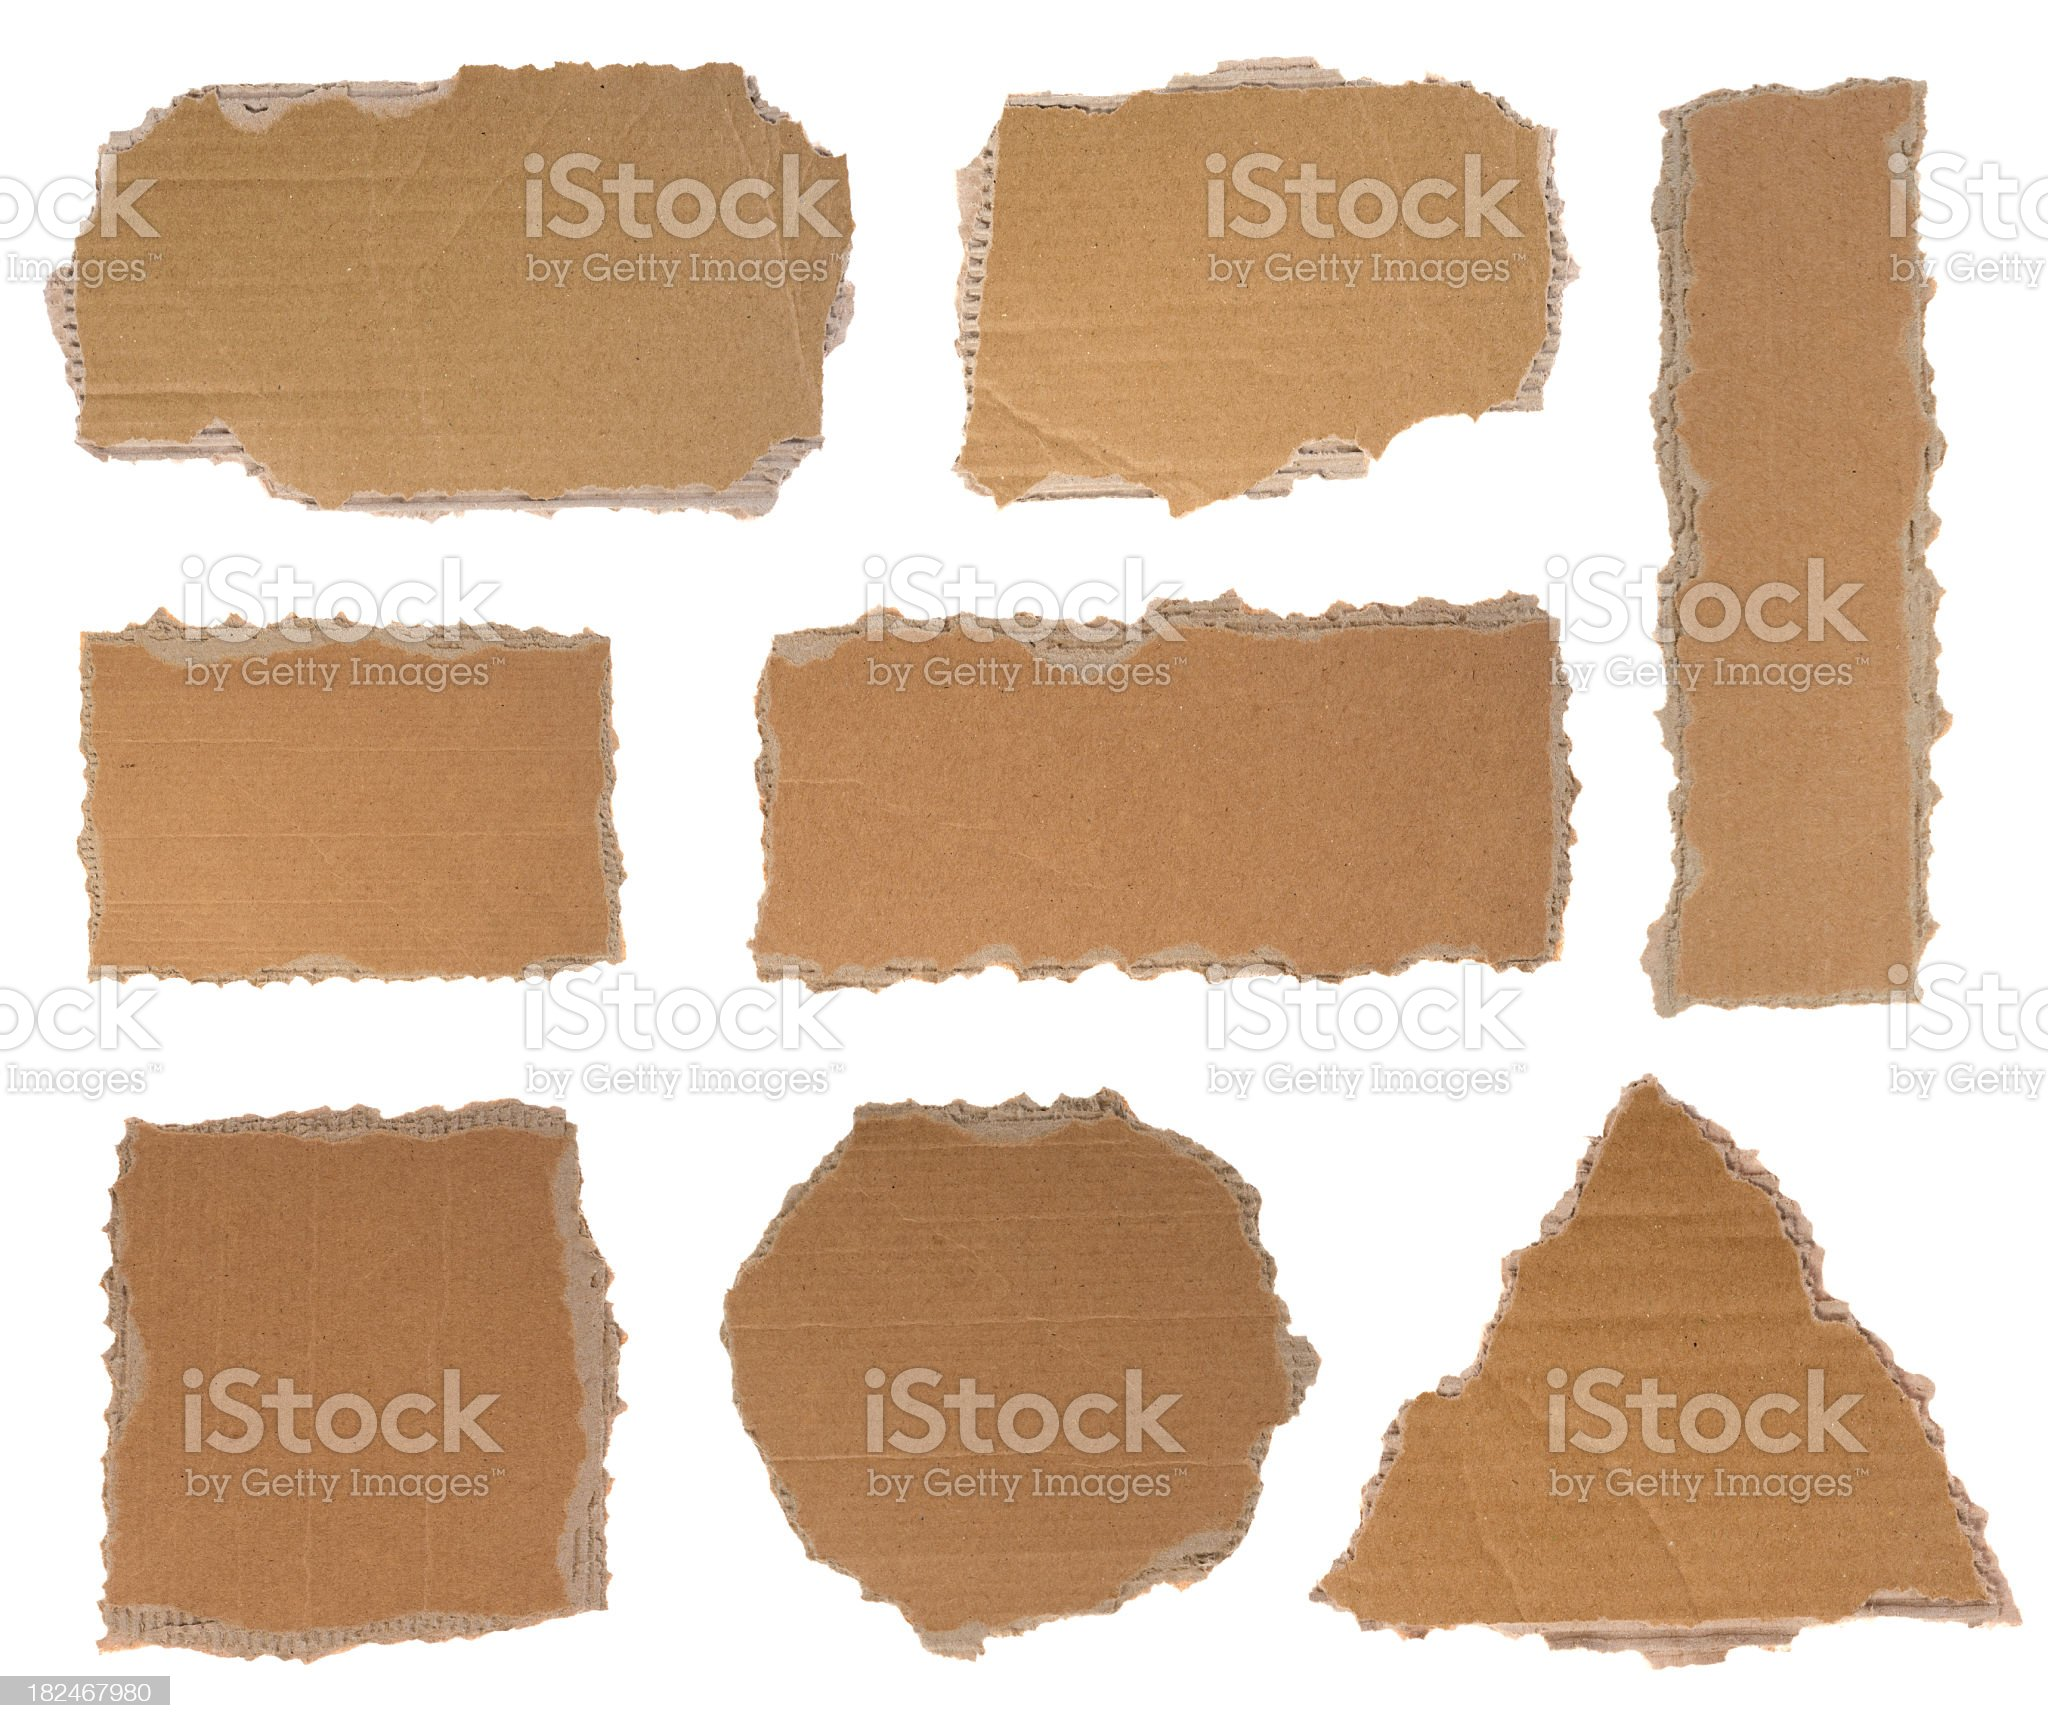 Torn pieces of cardboard royalty-free stock photo